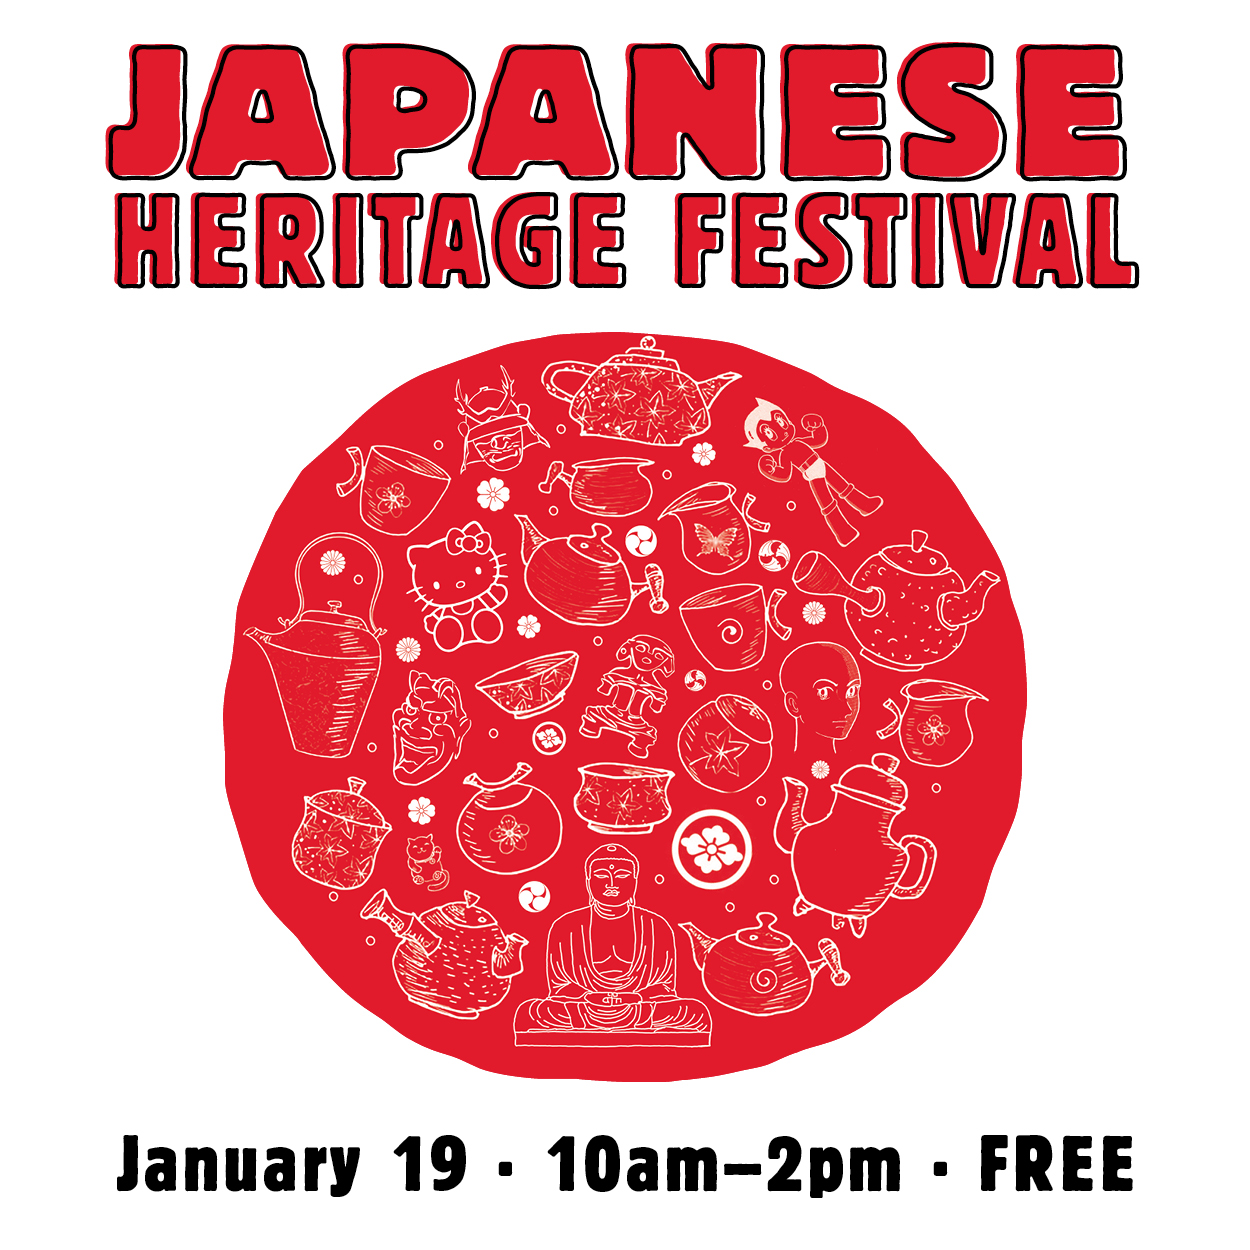 5 Things to do at Japanese Heritage Festival